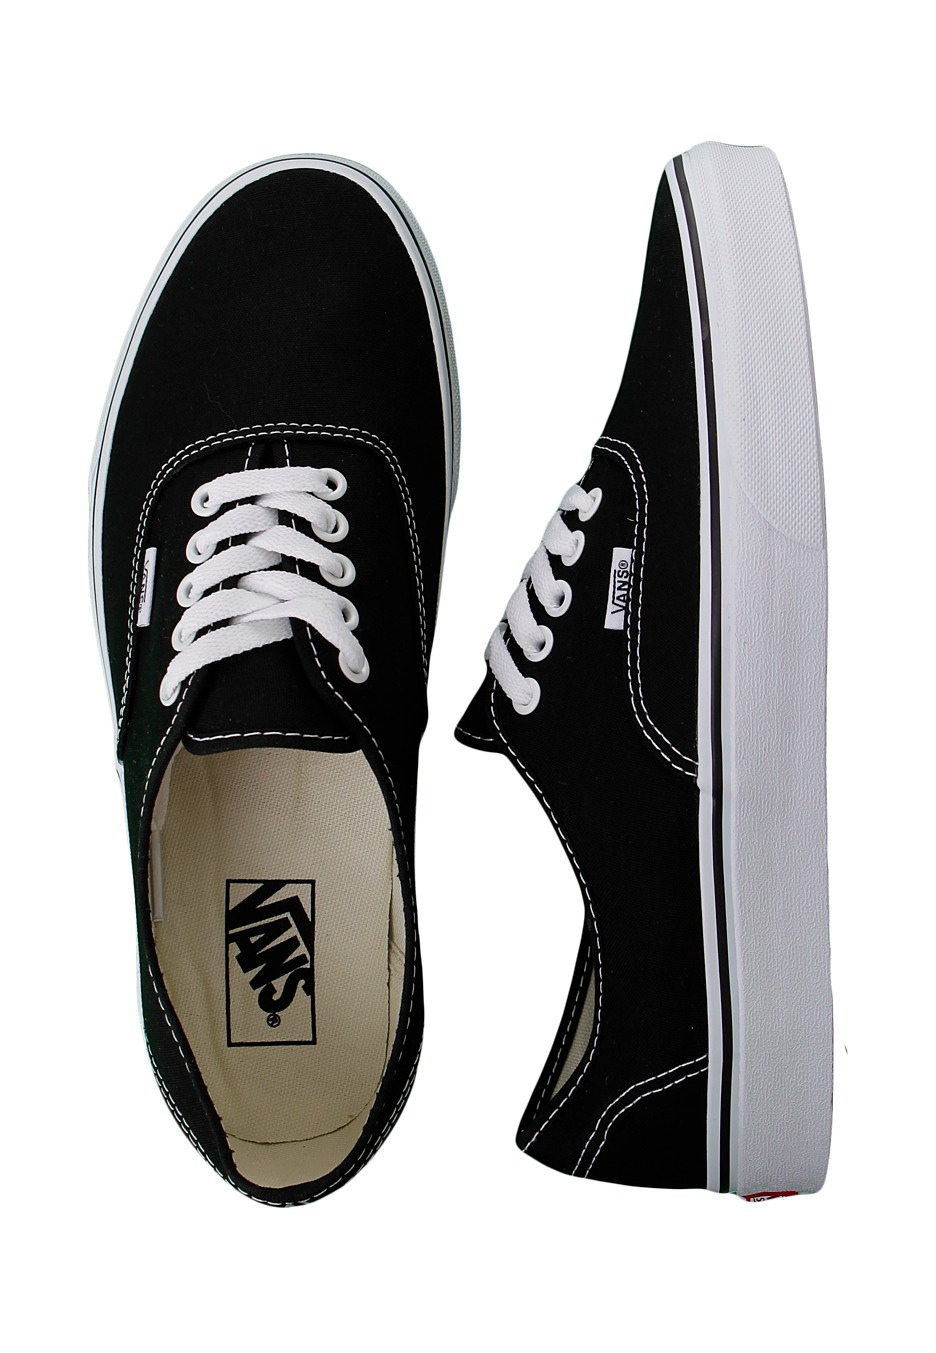 Chaussures Vans Authentic Fr Chaussures Authentic Fr Vans vYgf7yb6